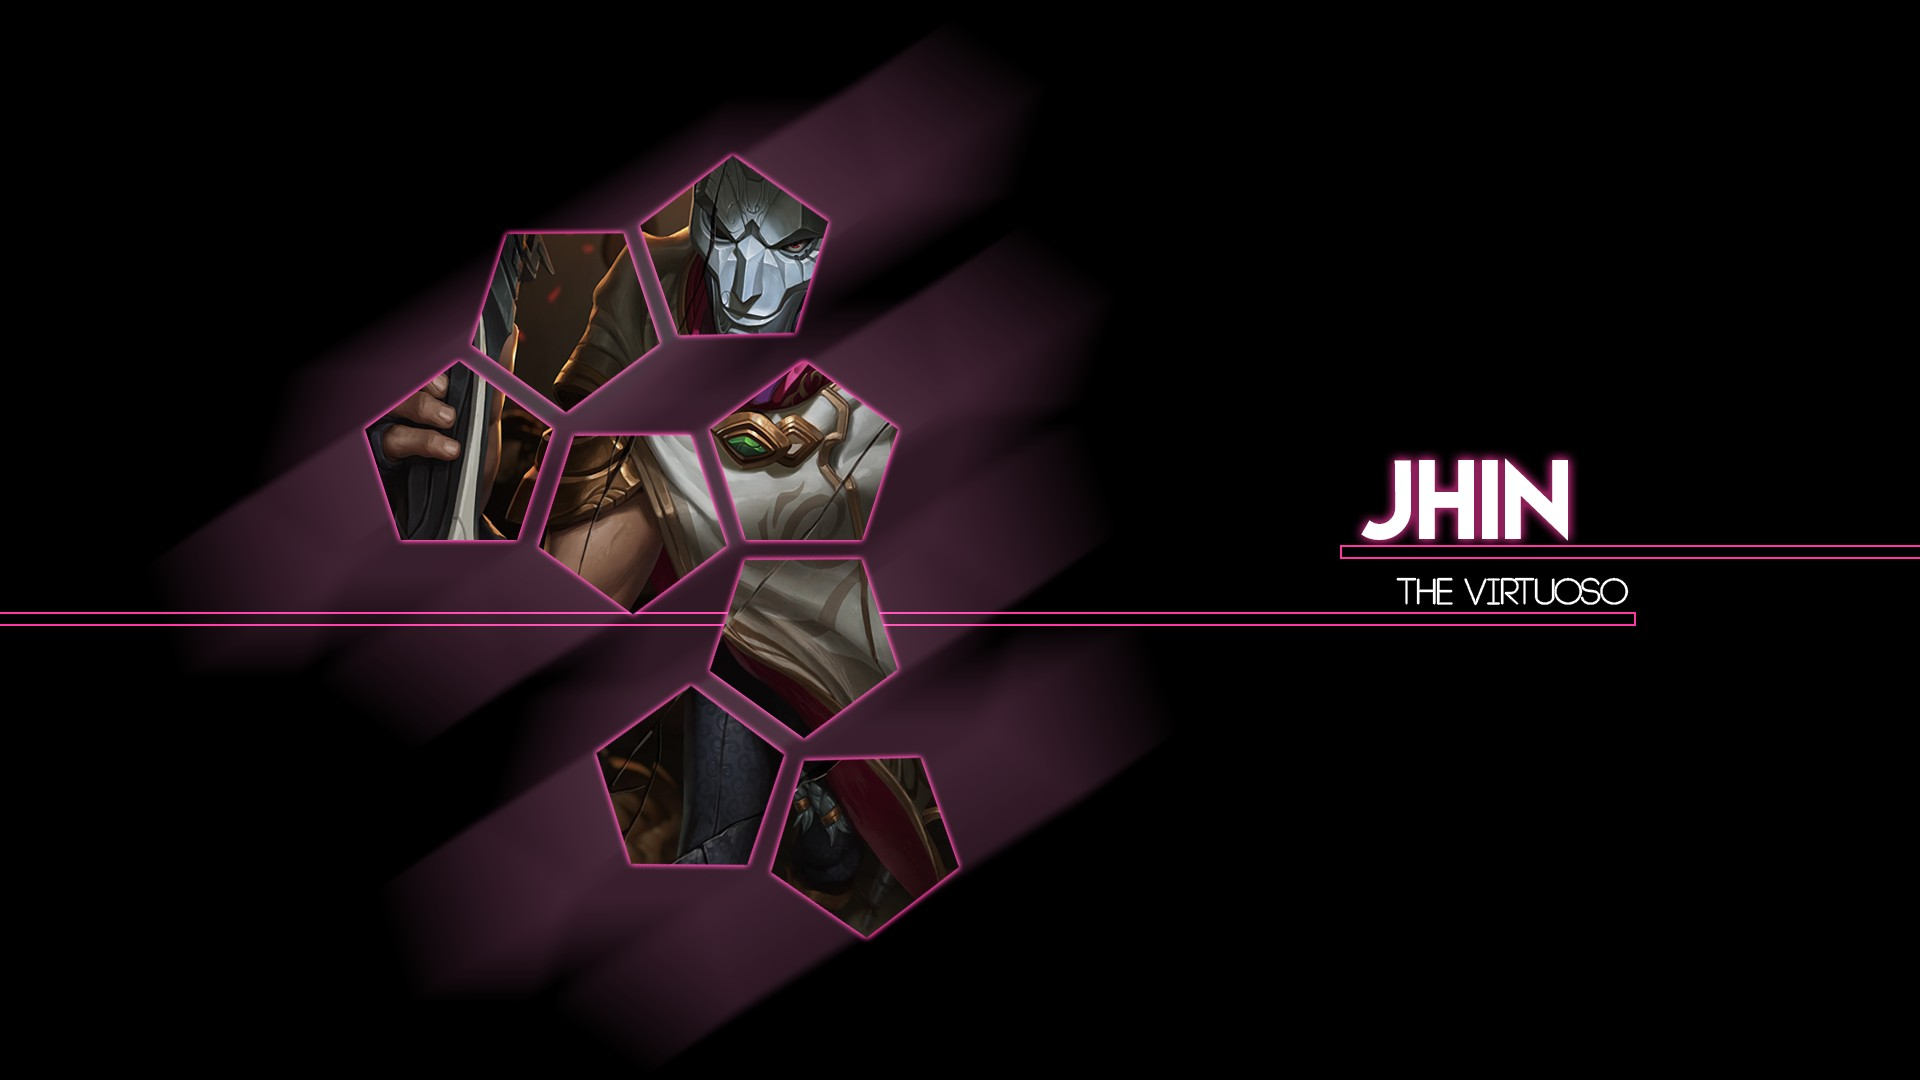 Jhin Background Download Free High Resolution Backgrounds For